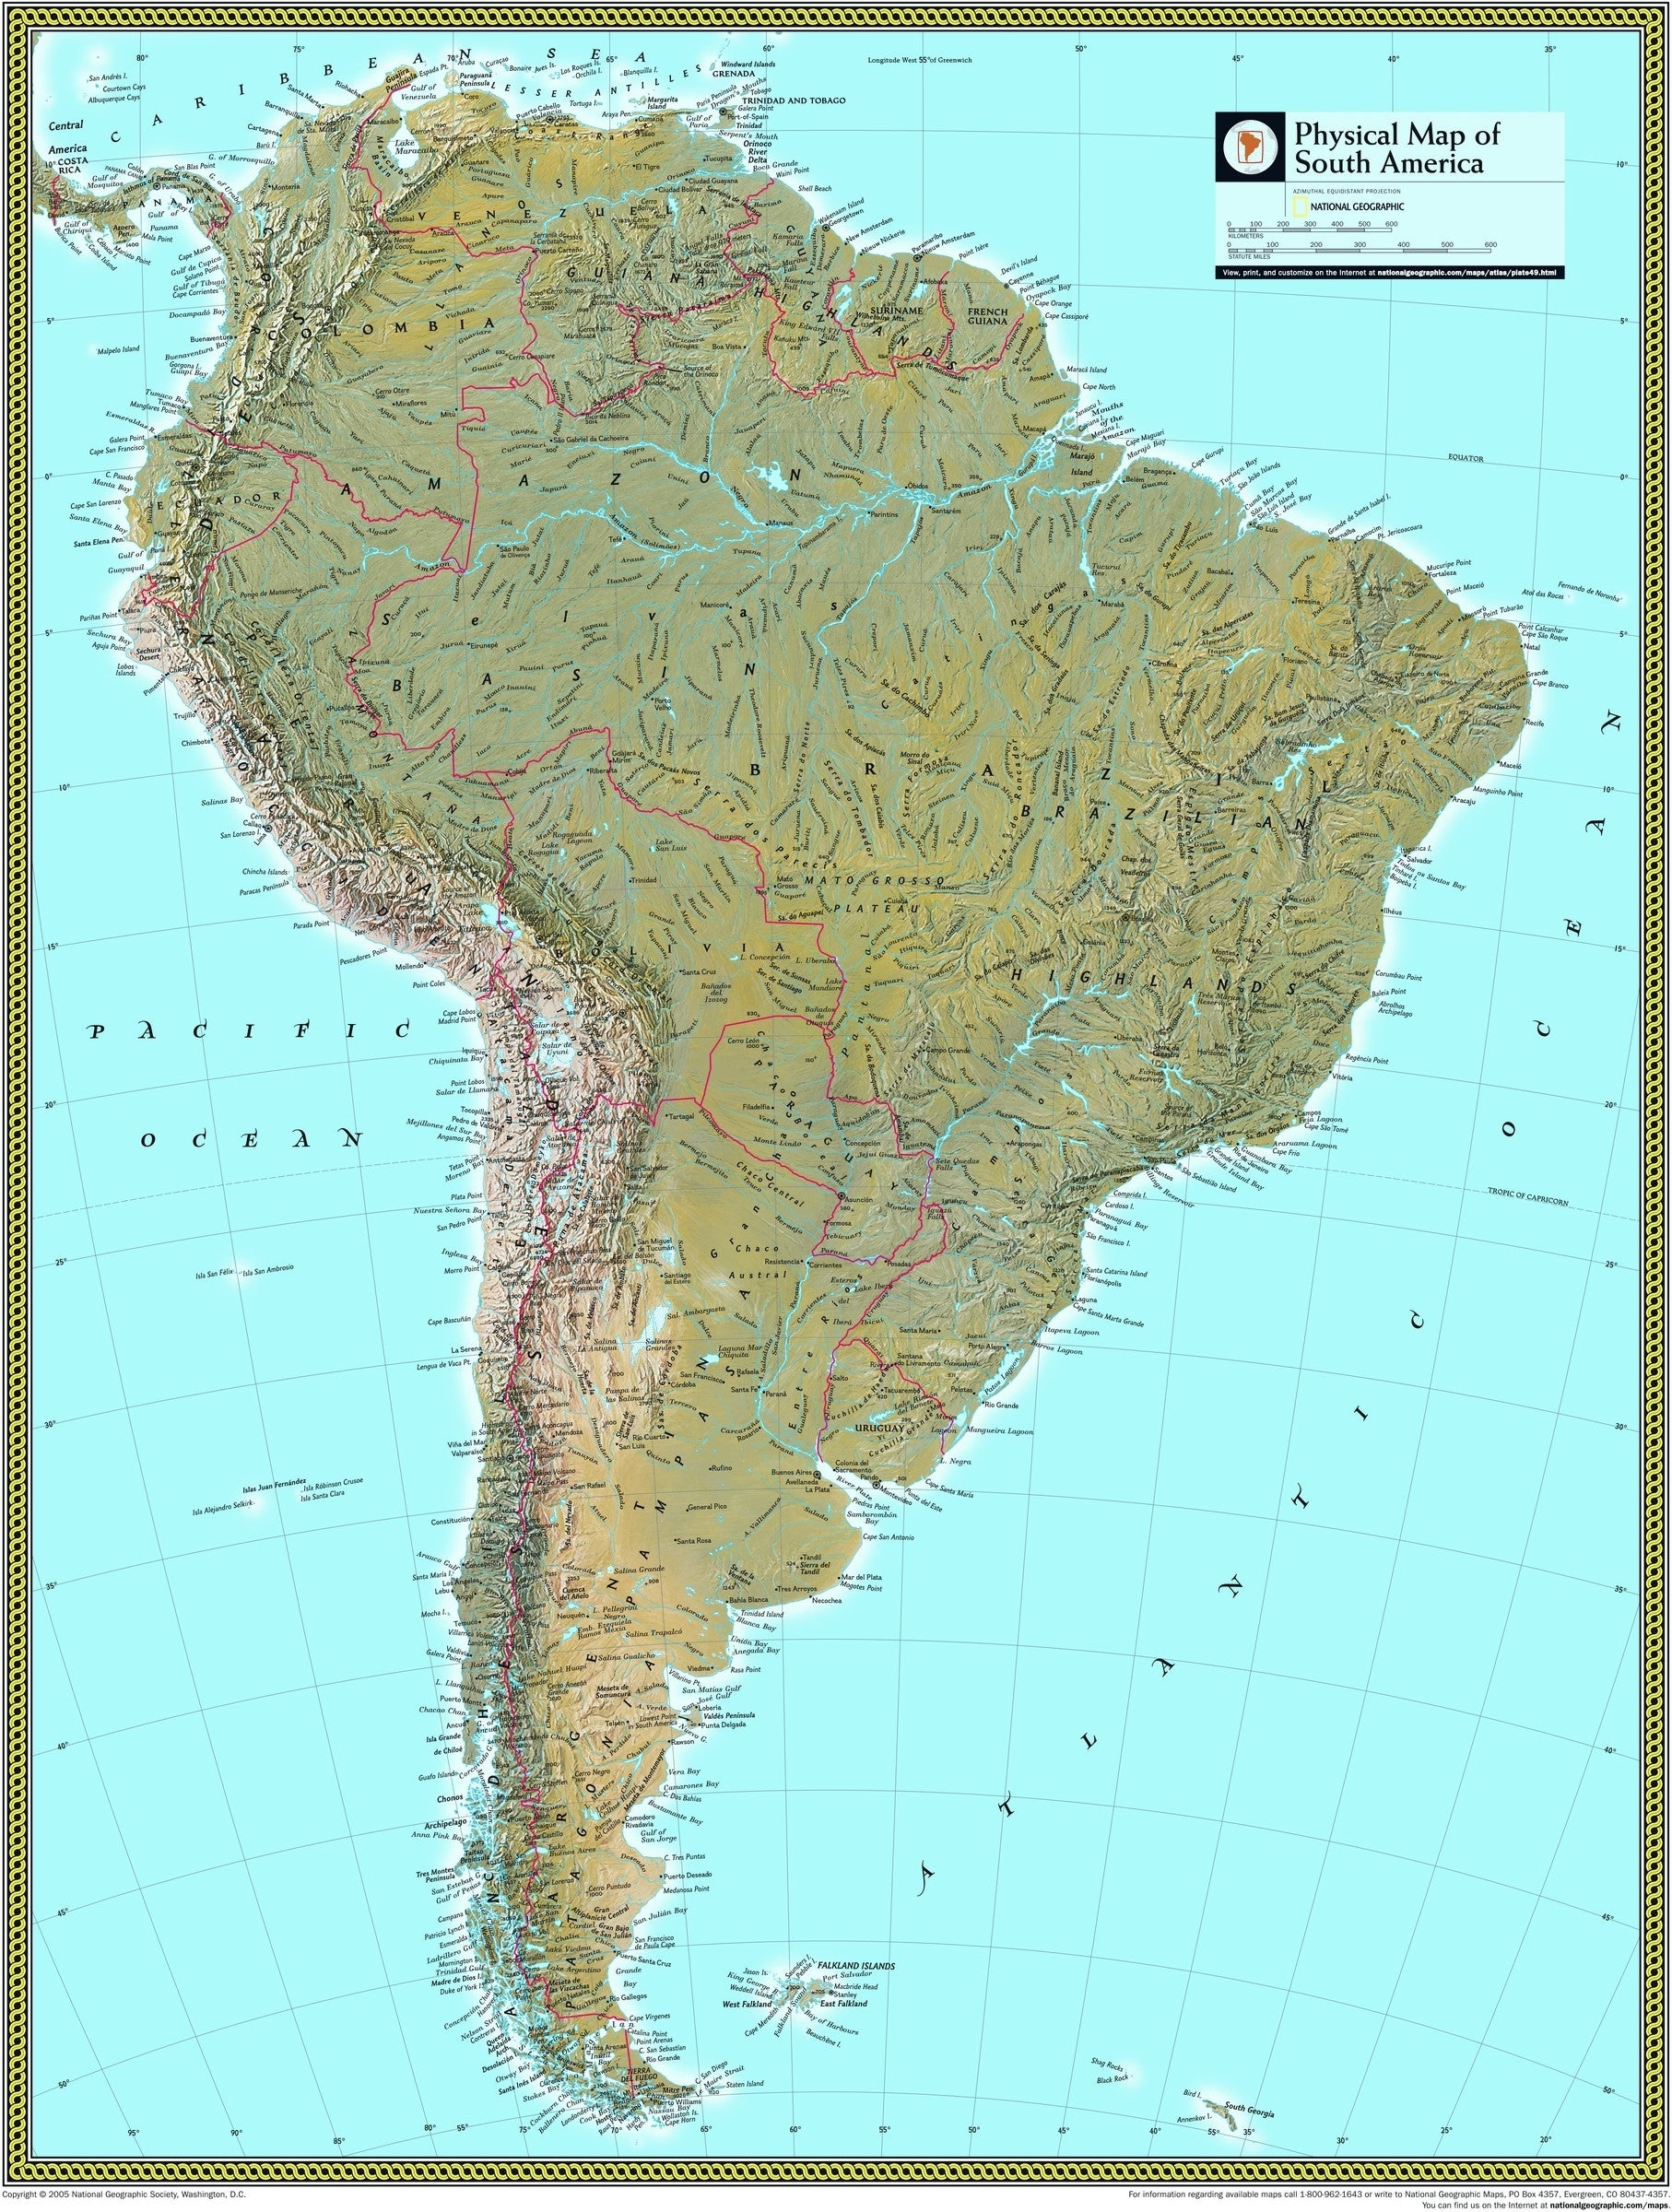 Image of: This Physical Wall Map Of South America By National Geographic Depicts The Drama Of The Andes As They Span The Entire Continent And How The Amazon And All Its Tributaries Snake Through